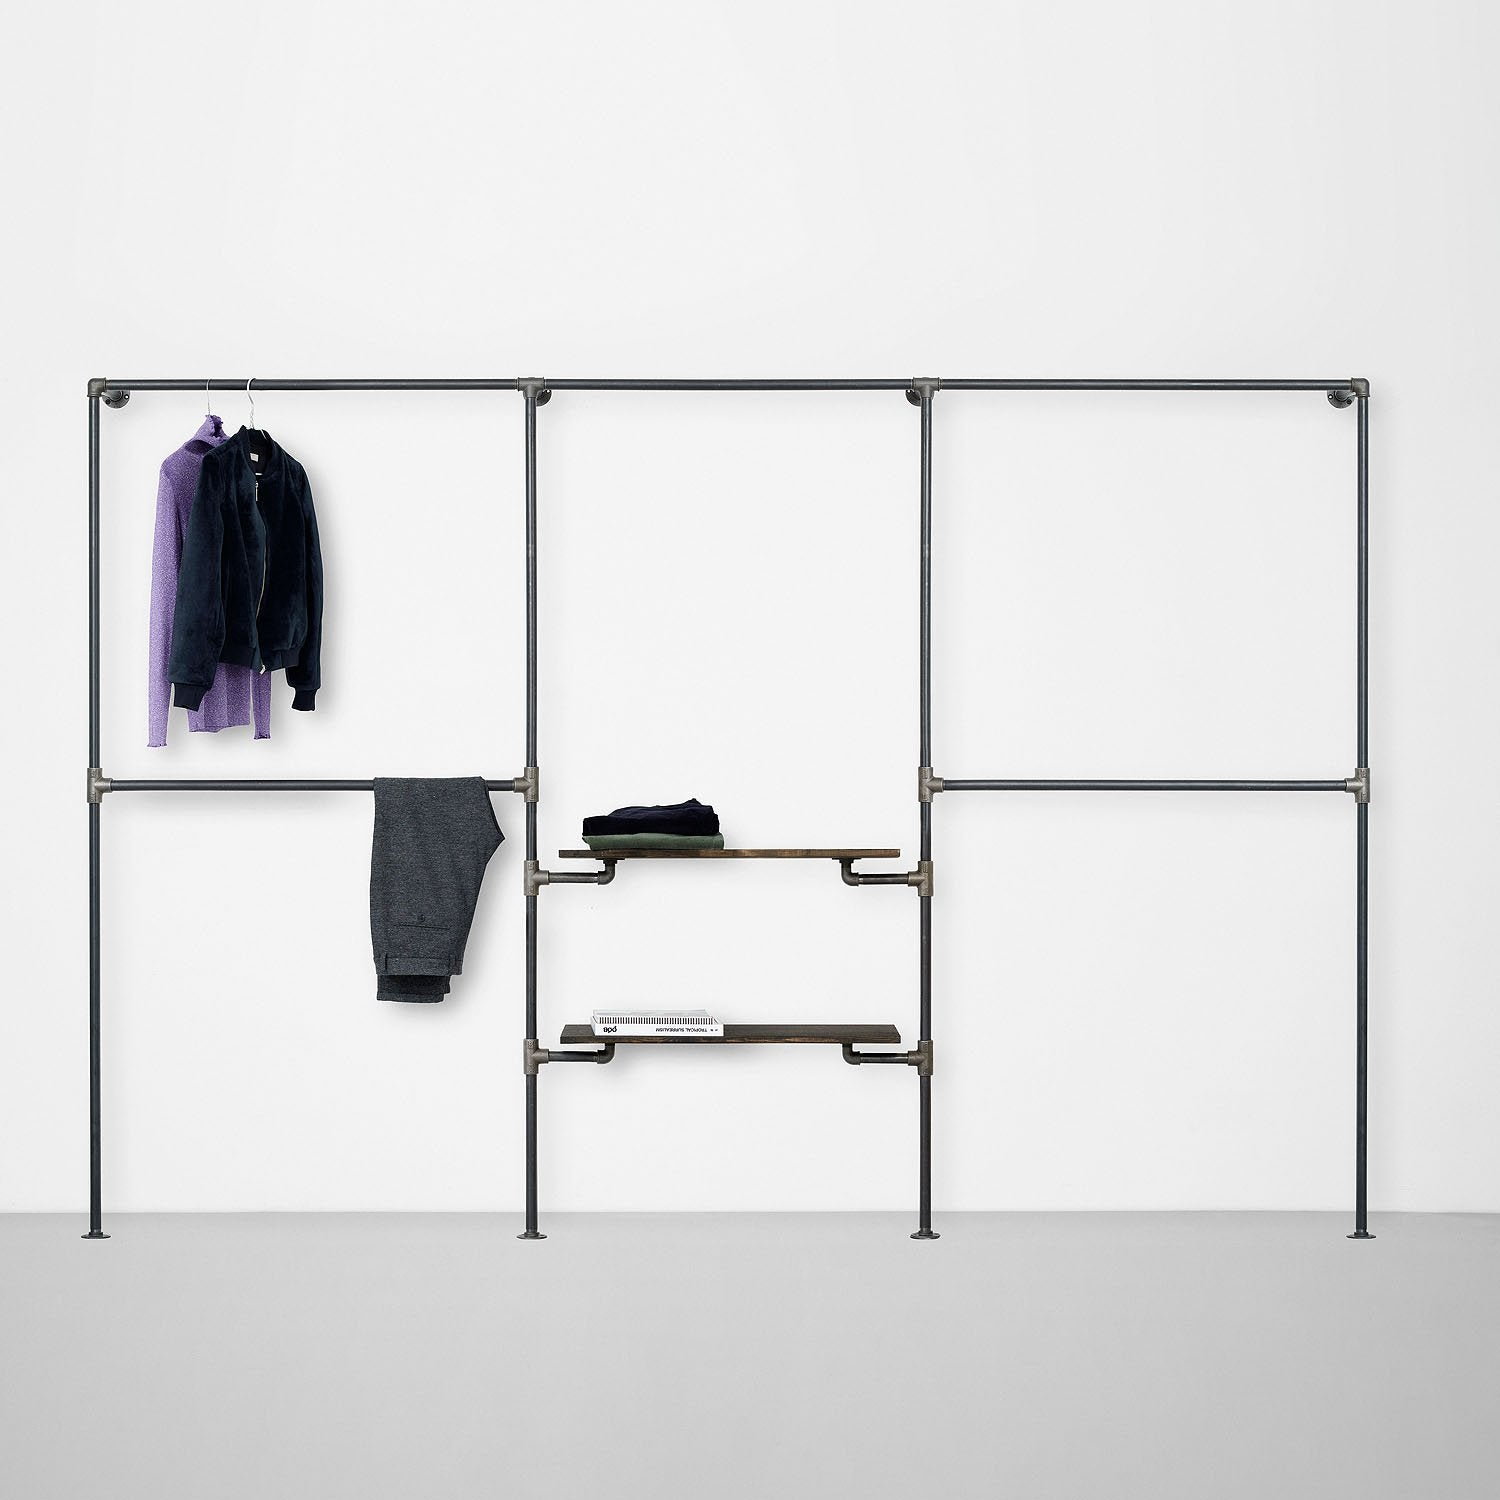 The Walk-In 3 row wardrobe system - 2 rails / 1 rail & 2 shelves / 2 rails